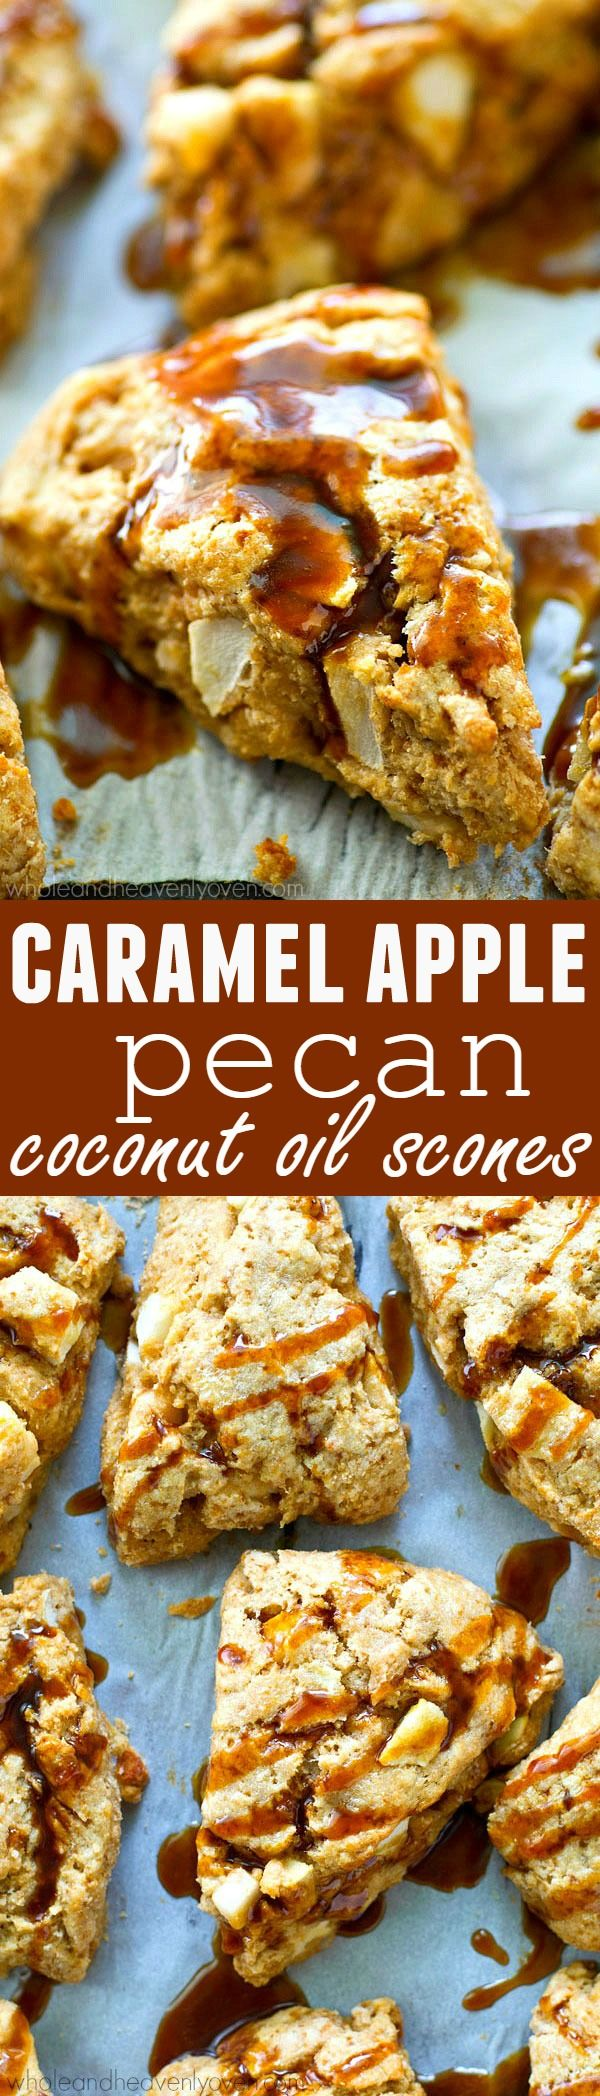 Everything you love about caramel apples in healthy coconut oil scone form! These flaky scones are quickly going to become a keeper fall weekend breakfast.